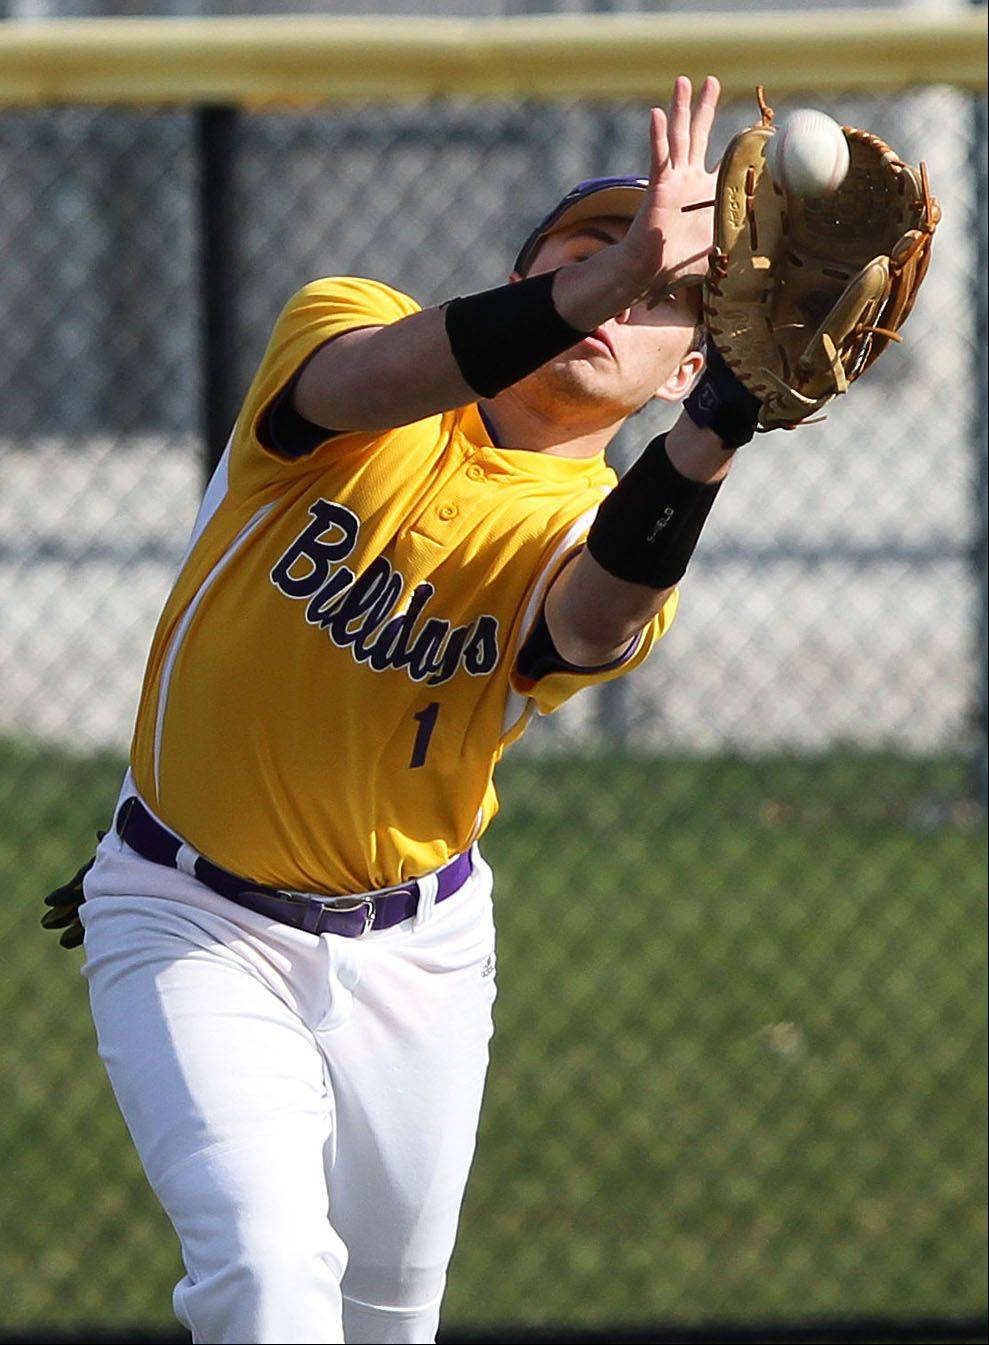 Wauconda's Jeff Lindberg makes a catch in the outfield Wednesday at Vernon Hills.